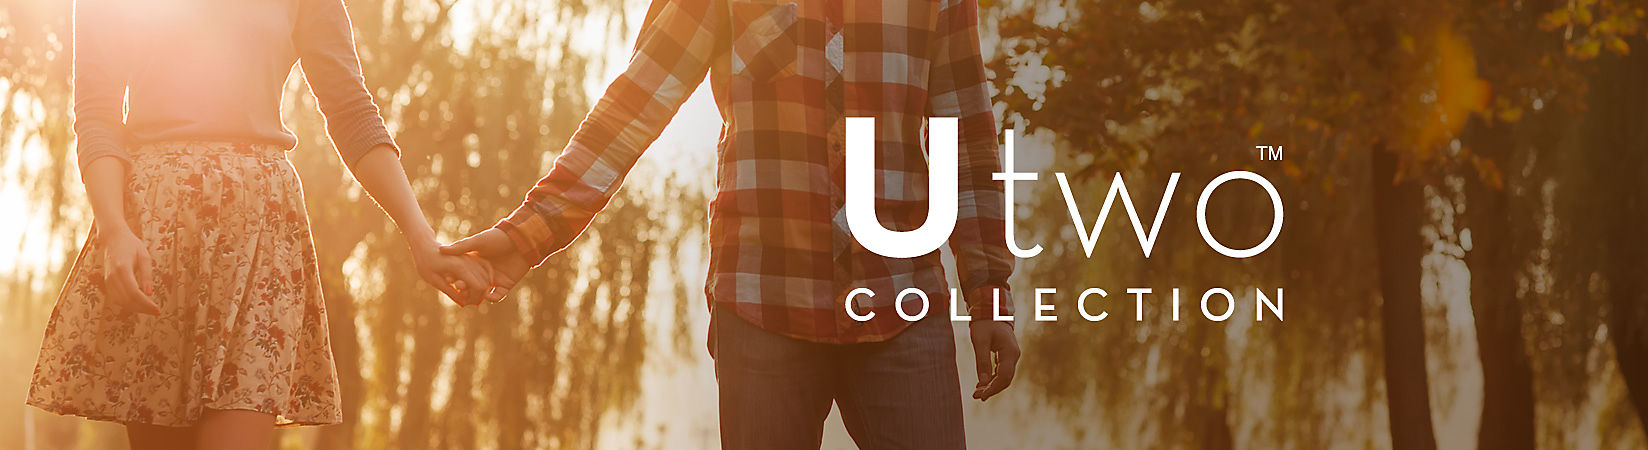 Utwo Collection